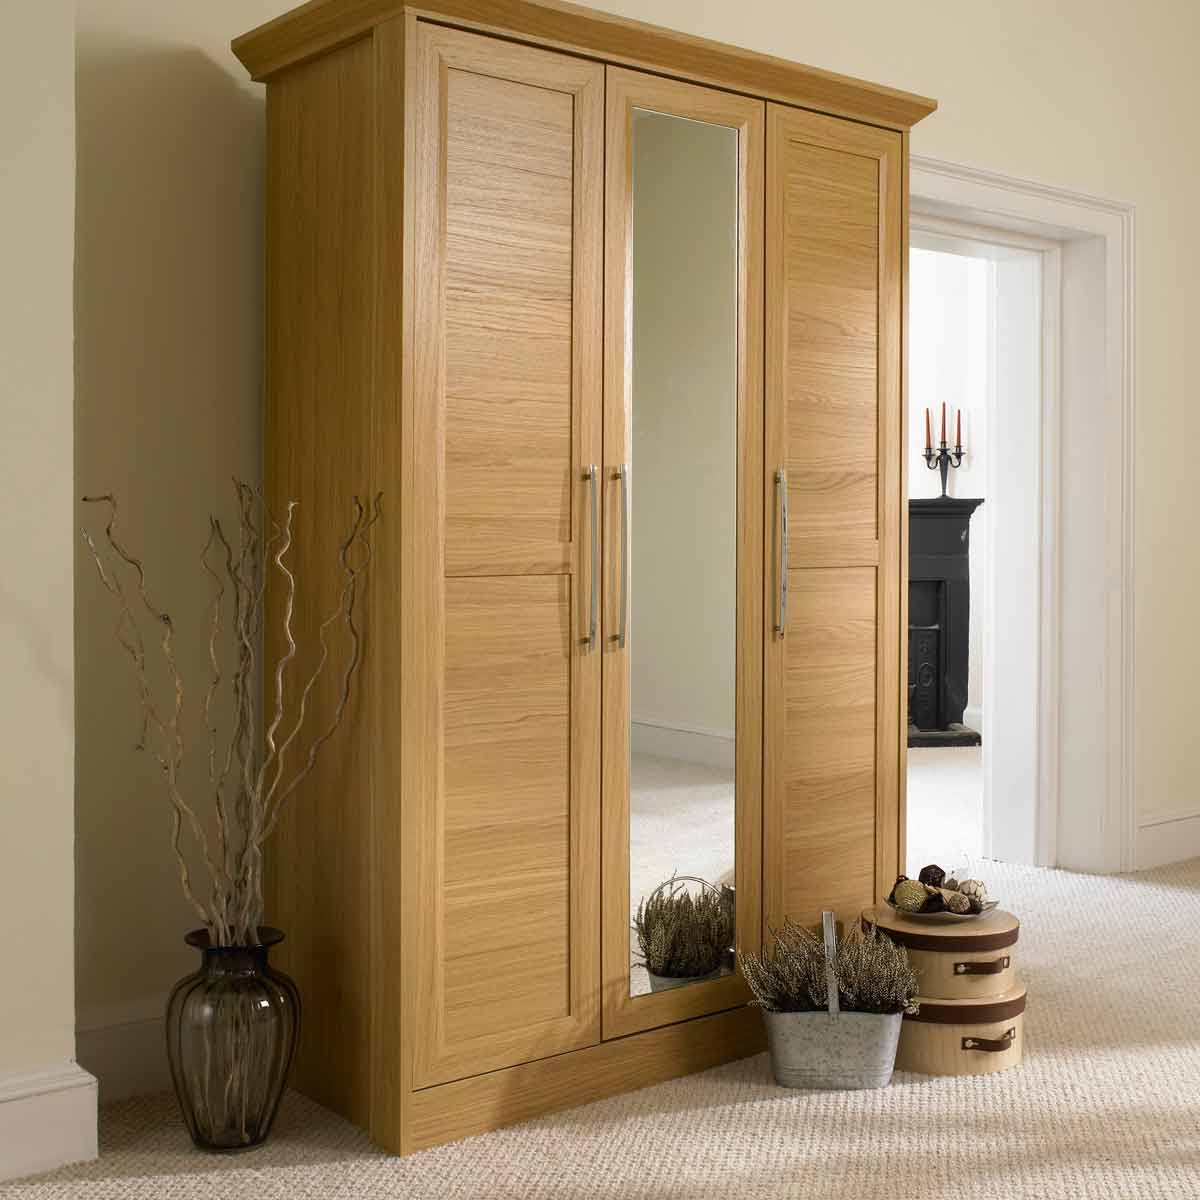 Bedroom Closets And Wardrobes: 25 Photos Large Wooden Wardrobes